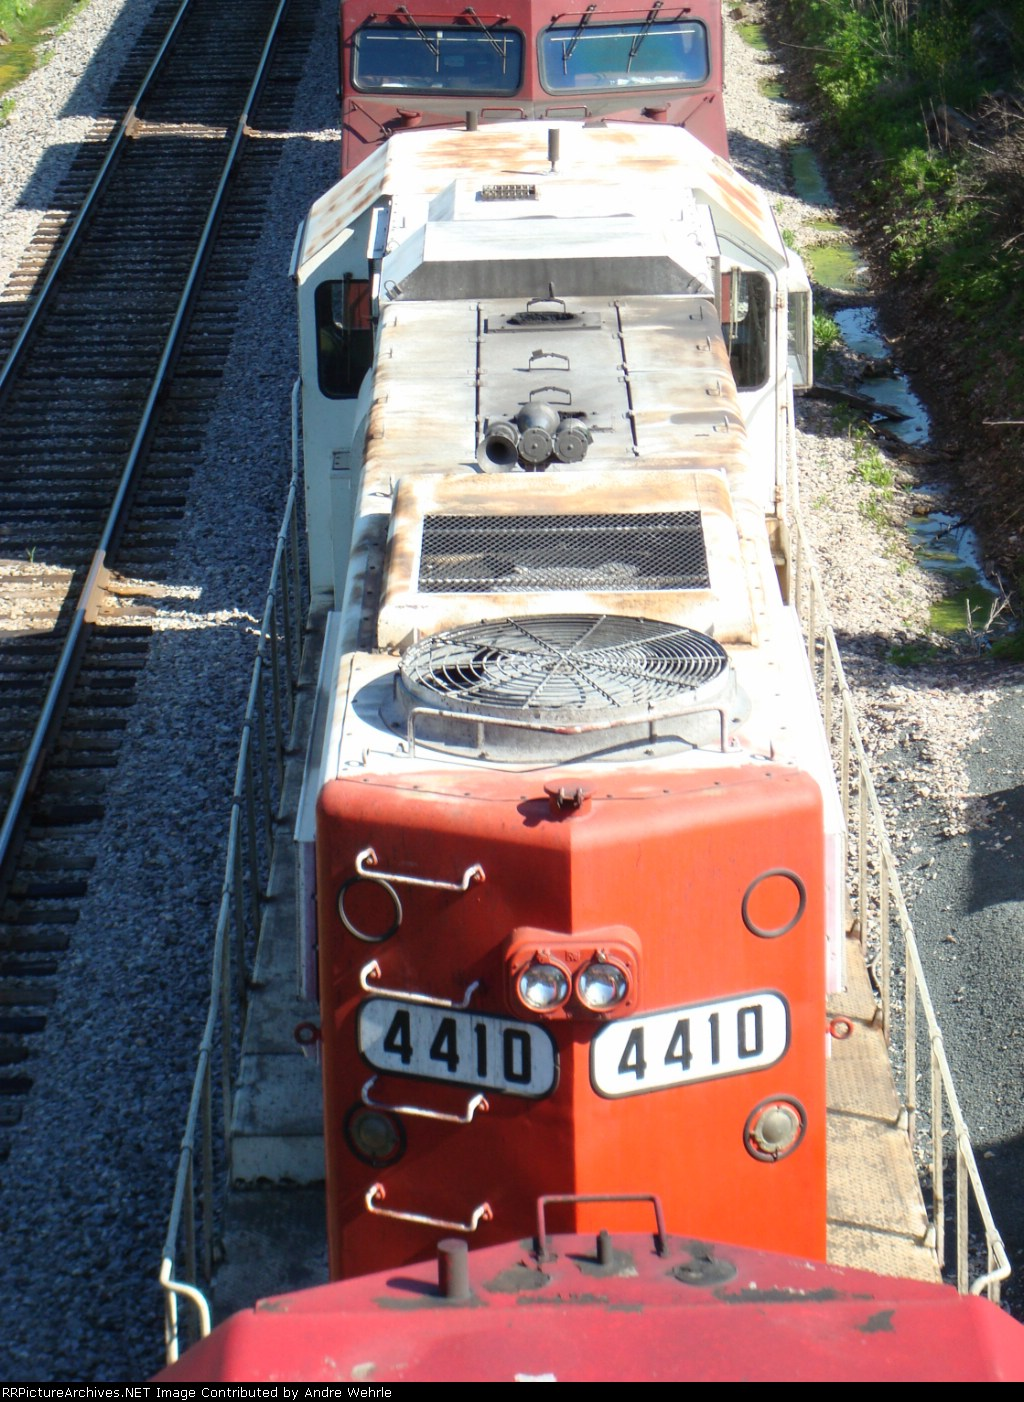 Roof of SOO 4410